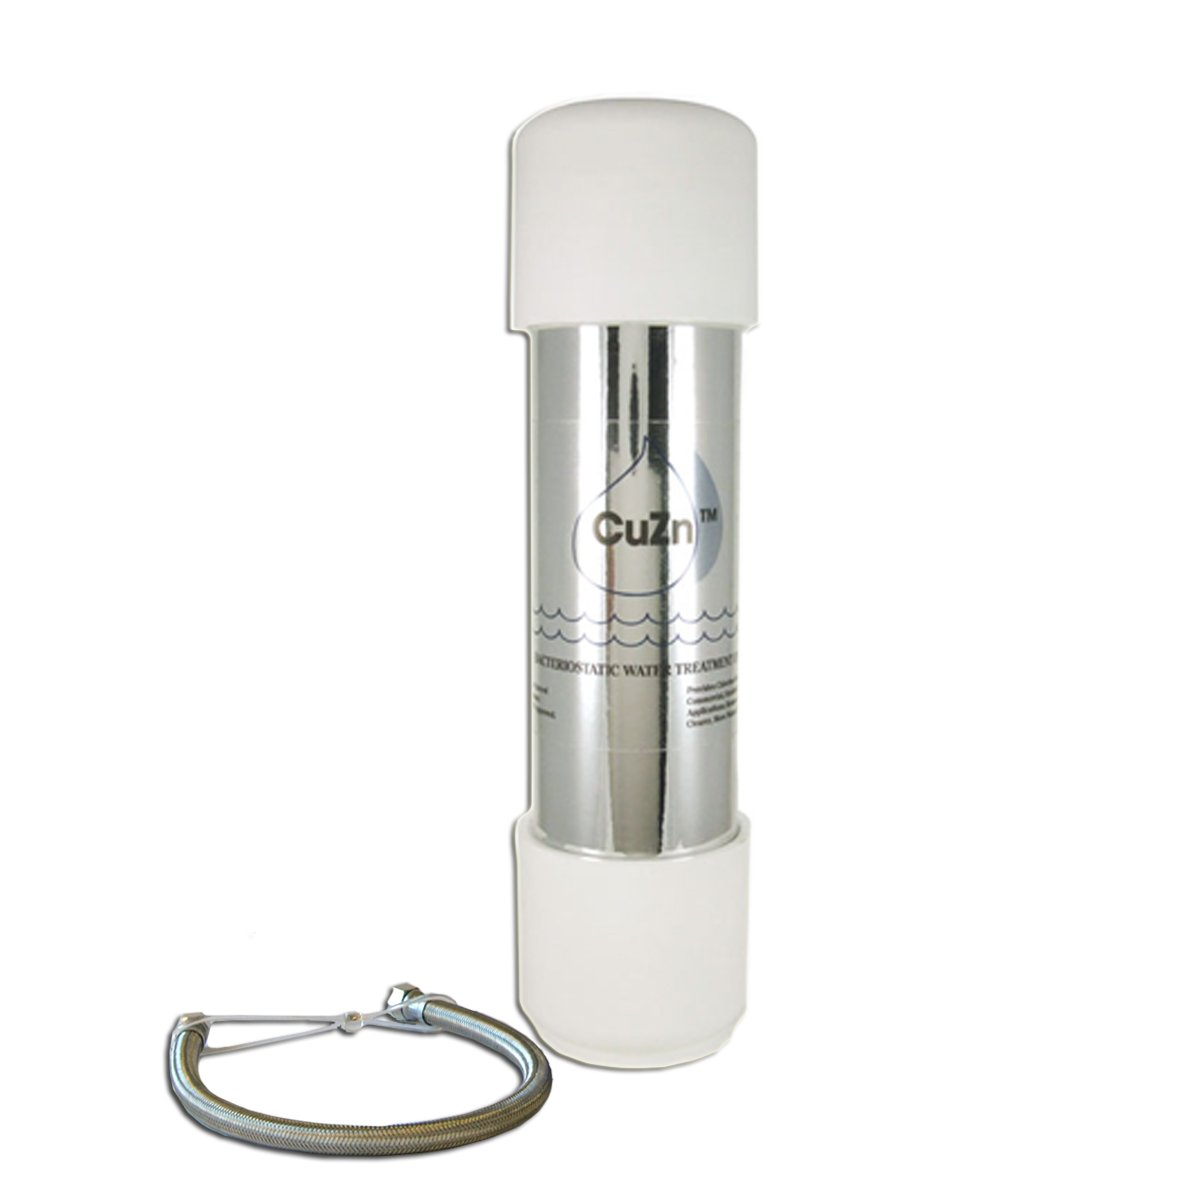 CuZn UC-200 Under Counter Water Filter - 50K Ultra High Capacity - Made in USA by CuZn Water Systems